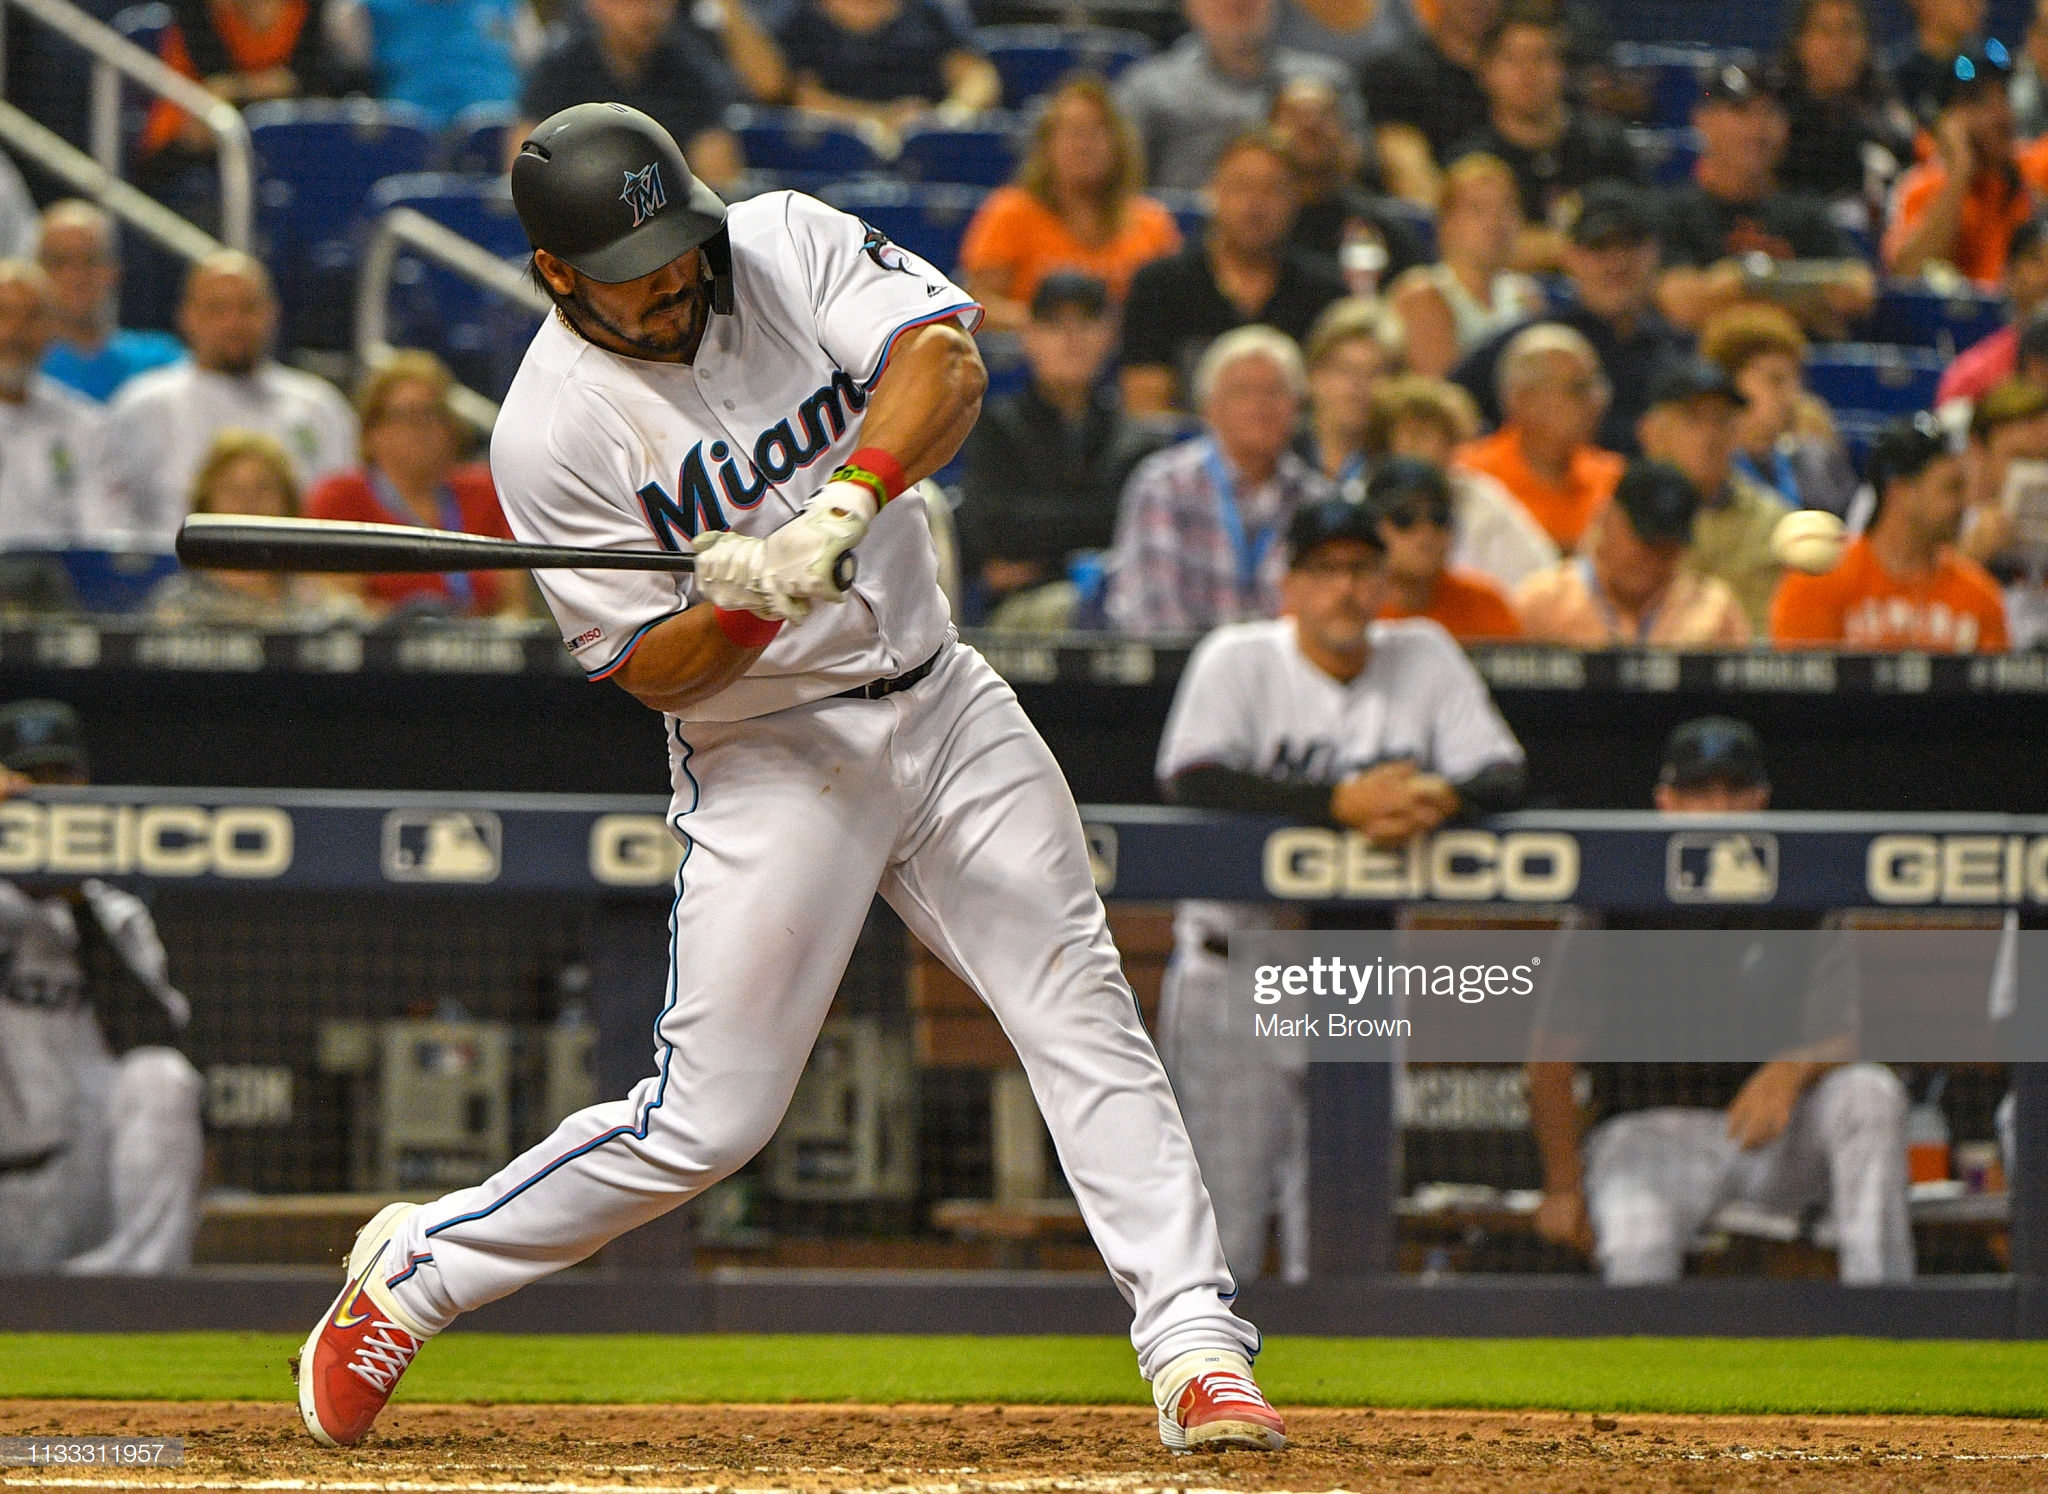 MIAMI, FL - MARCH 28: Jorge Alfaro #38 of the Miami Marlins at bat in the fifth inning against the Colorado Rockies during Opening Day at Marlins Park on March 28, 2019 in Miami, Florida. (Photo by Mark Brown/Getty Images)